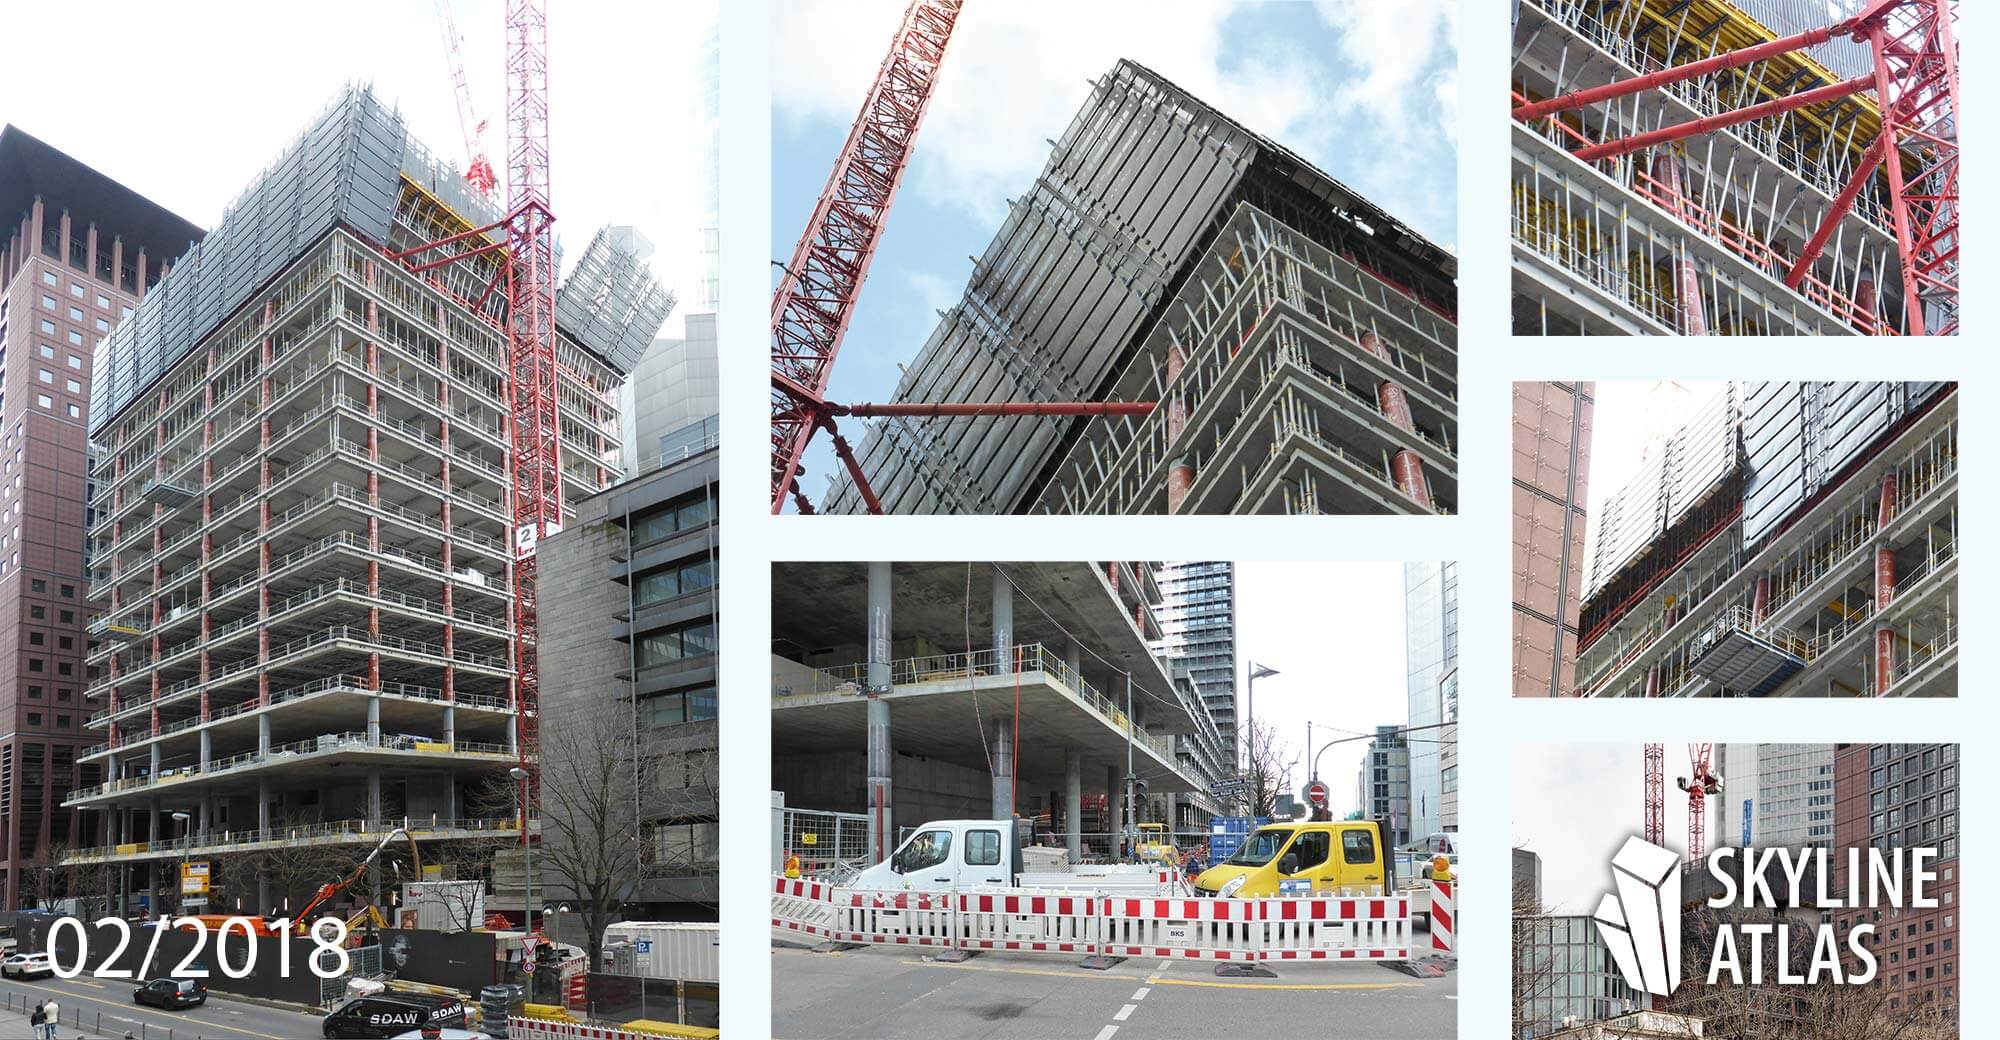 OmniTurm skyscraper - under construction - Frankfurt CBD Central Business District - February 2018